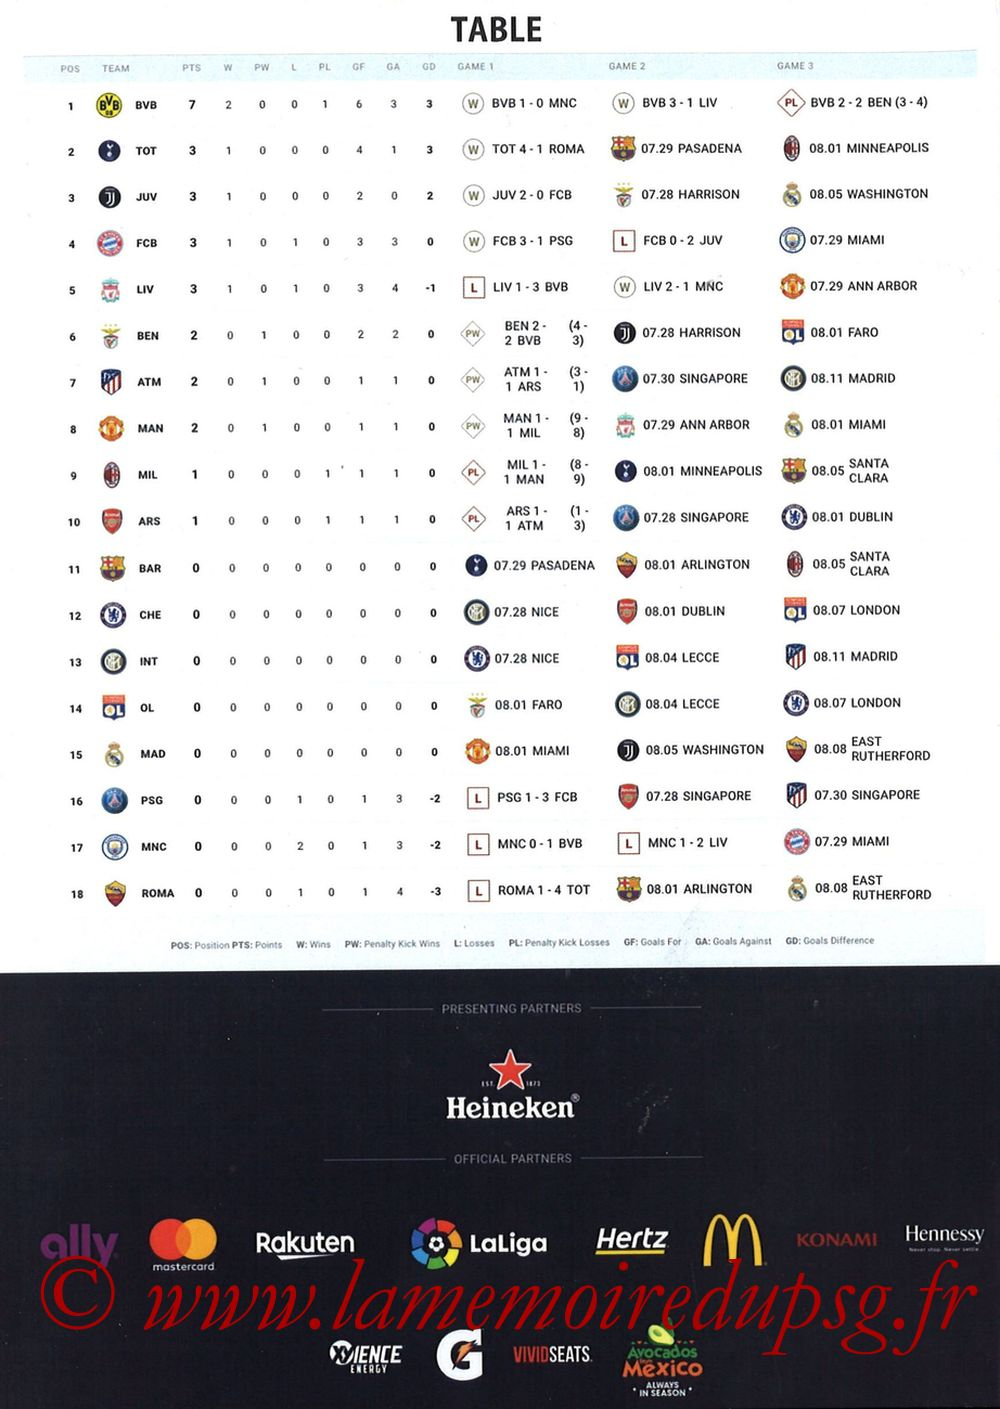 2018-07-28  Arsenal-PSG (International Champions Cup à Singapour, Programme pirate) - Page 04